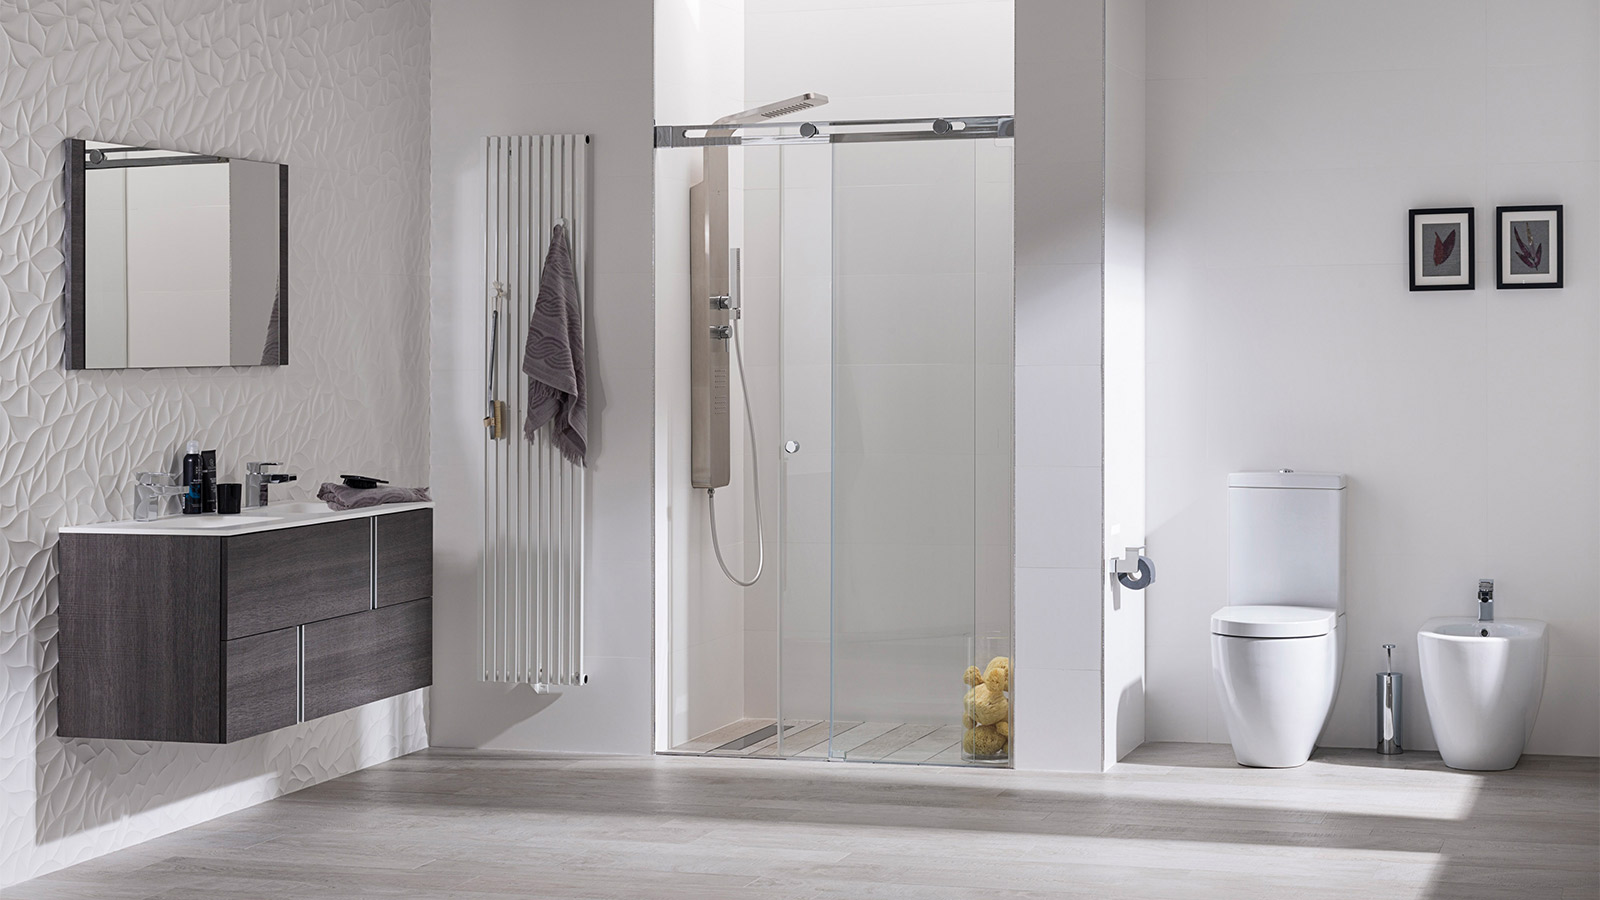 How to waterproof your bathroom using Butech materials